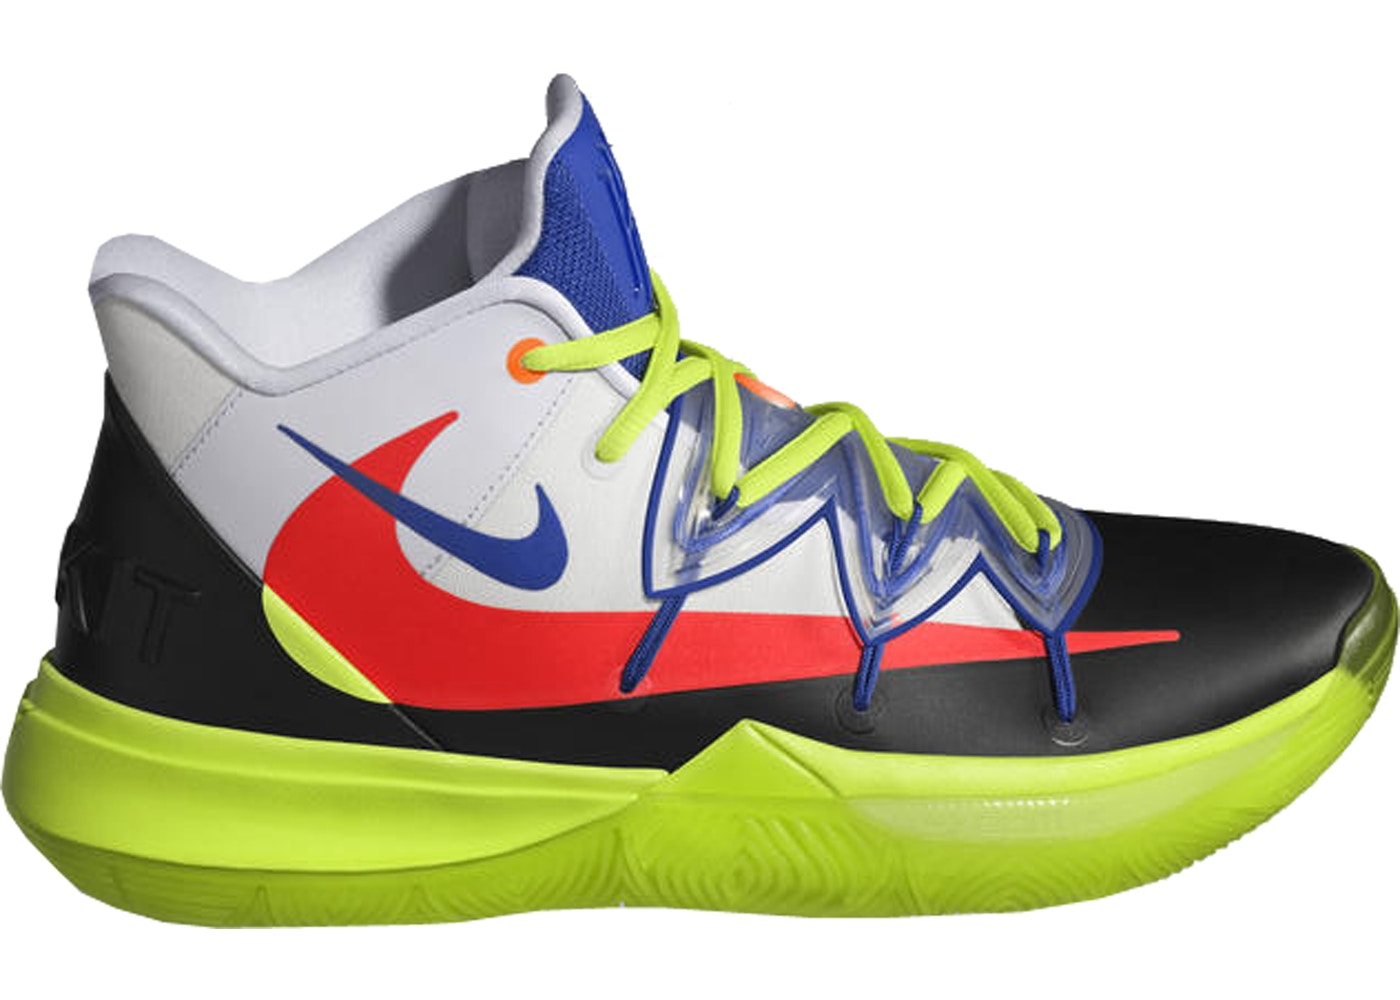 5b549de5cc60 Kyrie 5 Rokit • Buy or Sell right here on StockX today